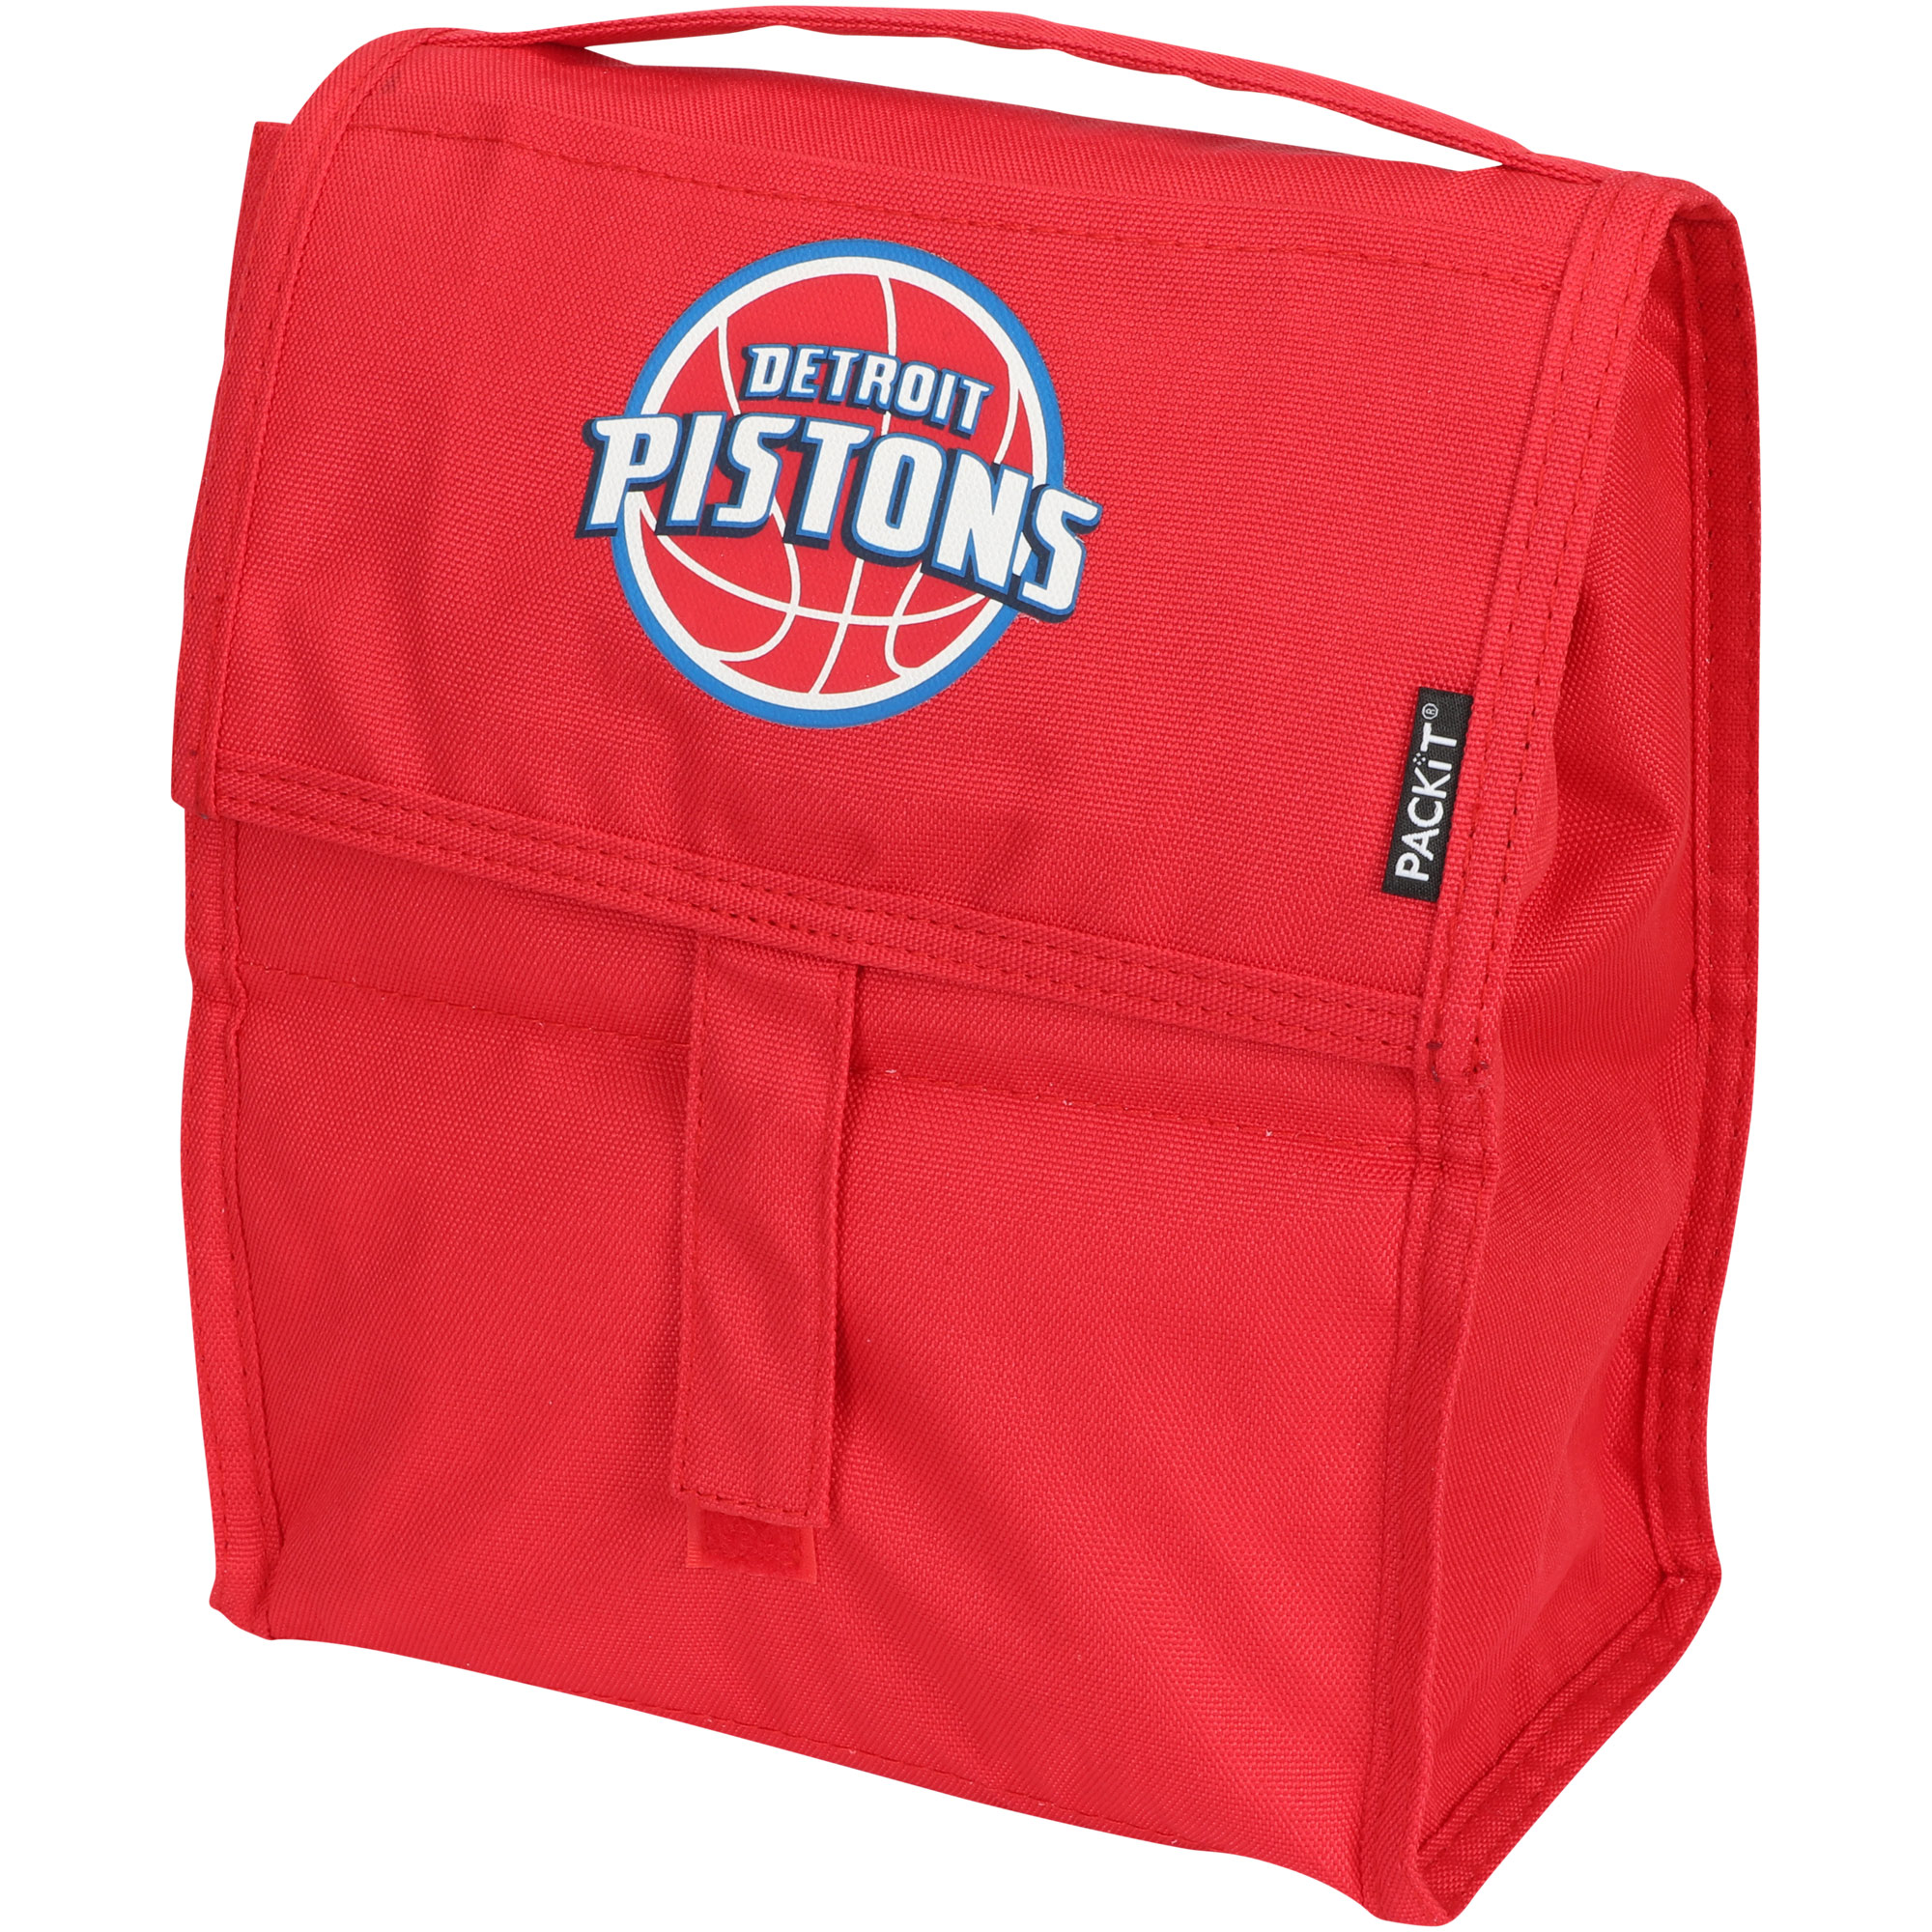 Detroit Pistons PackIt Lunch Box - No Size